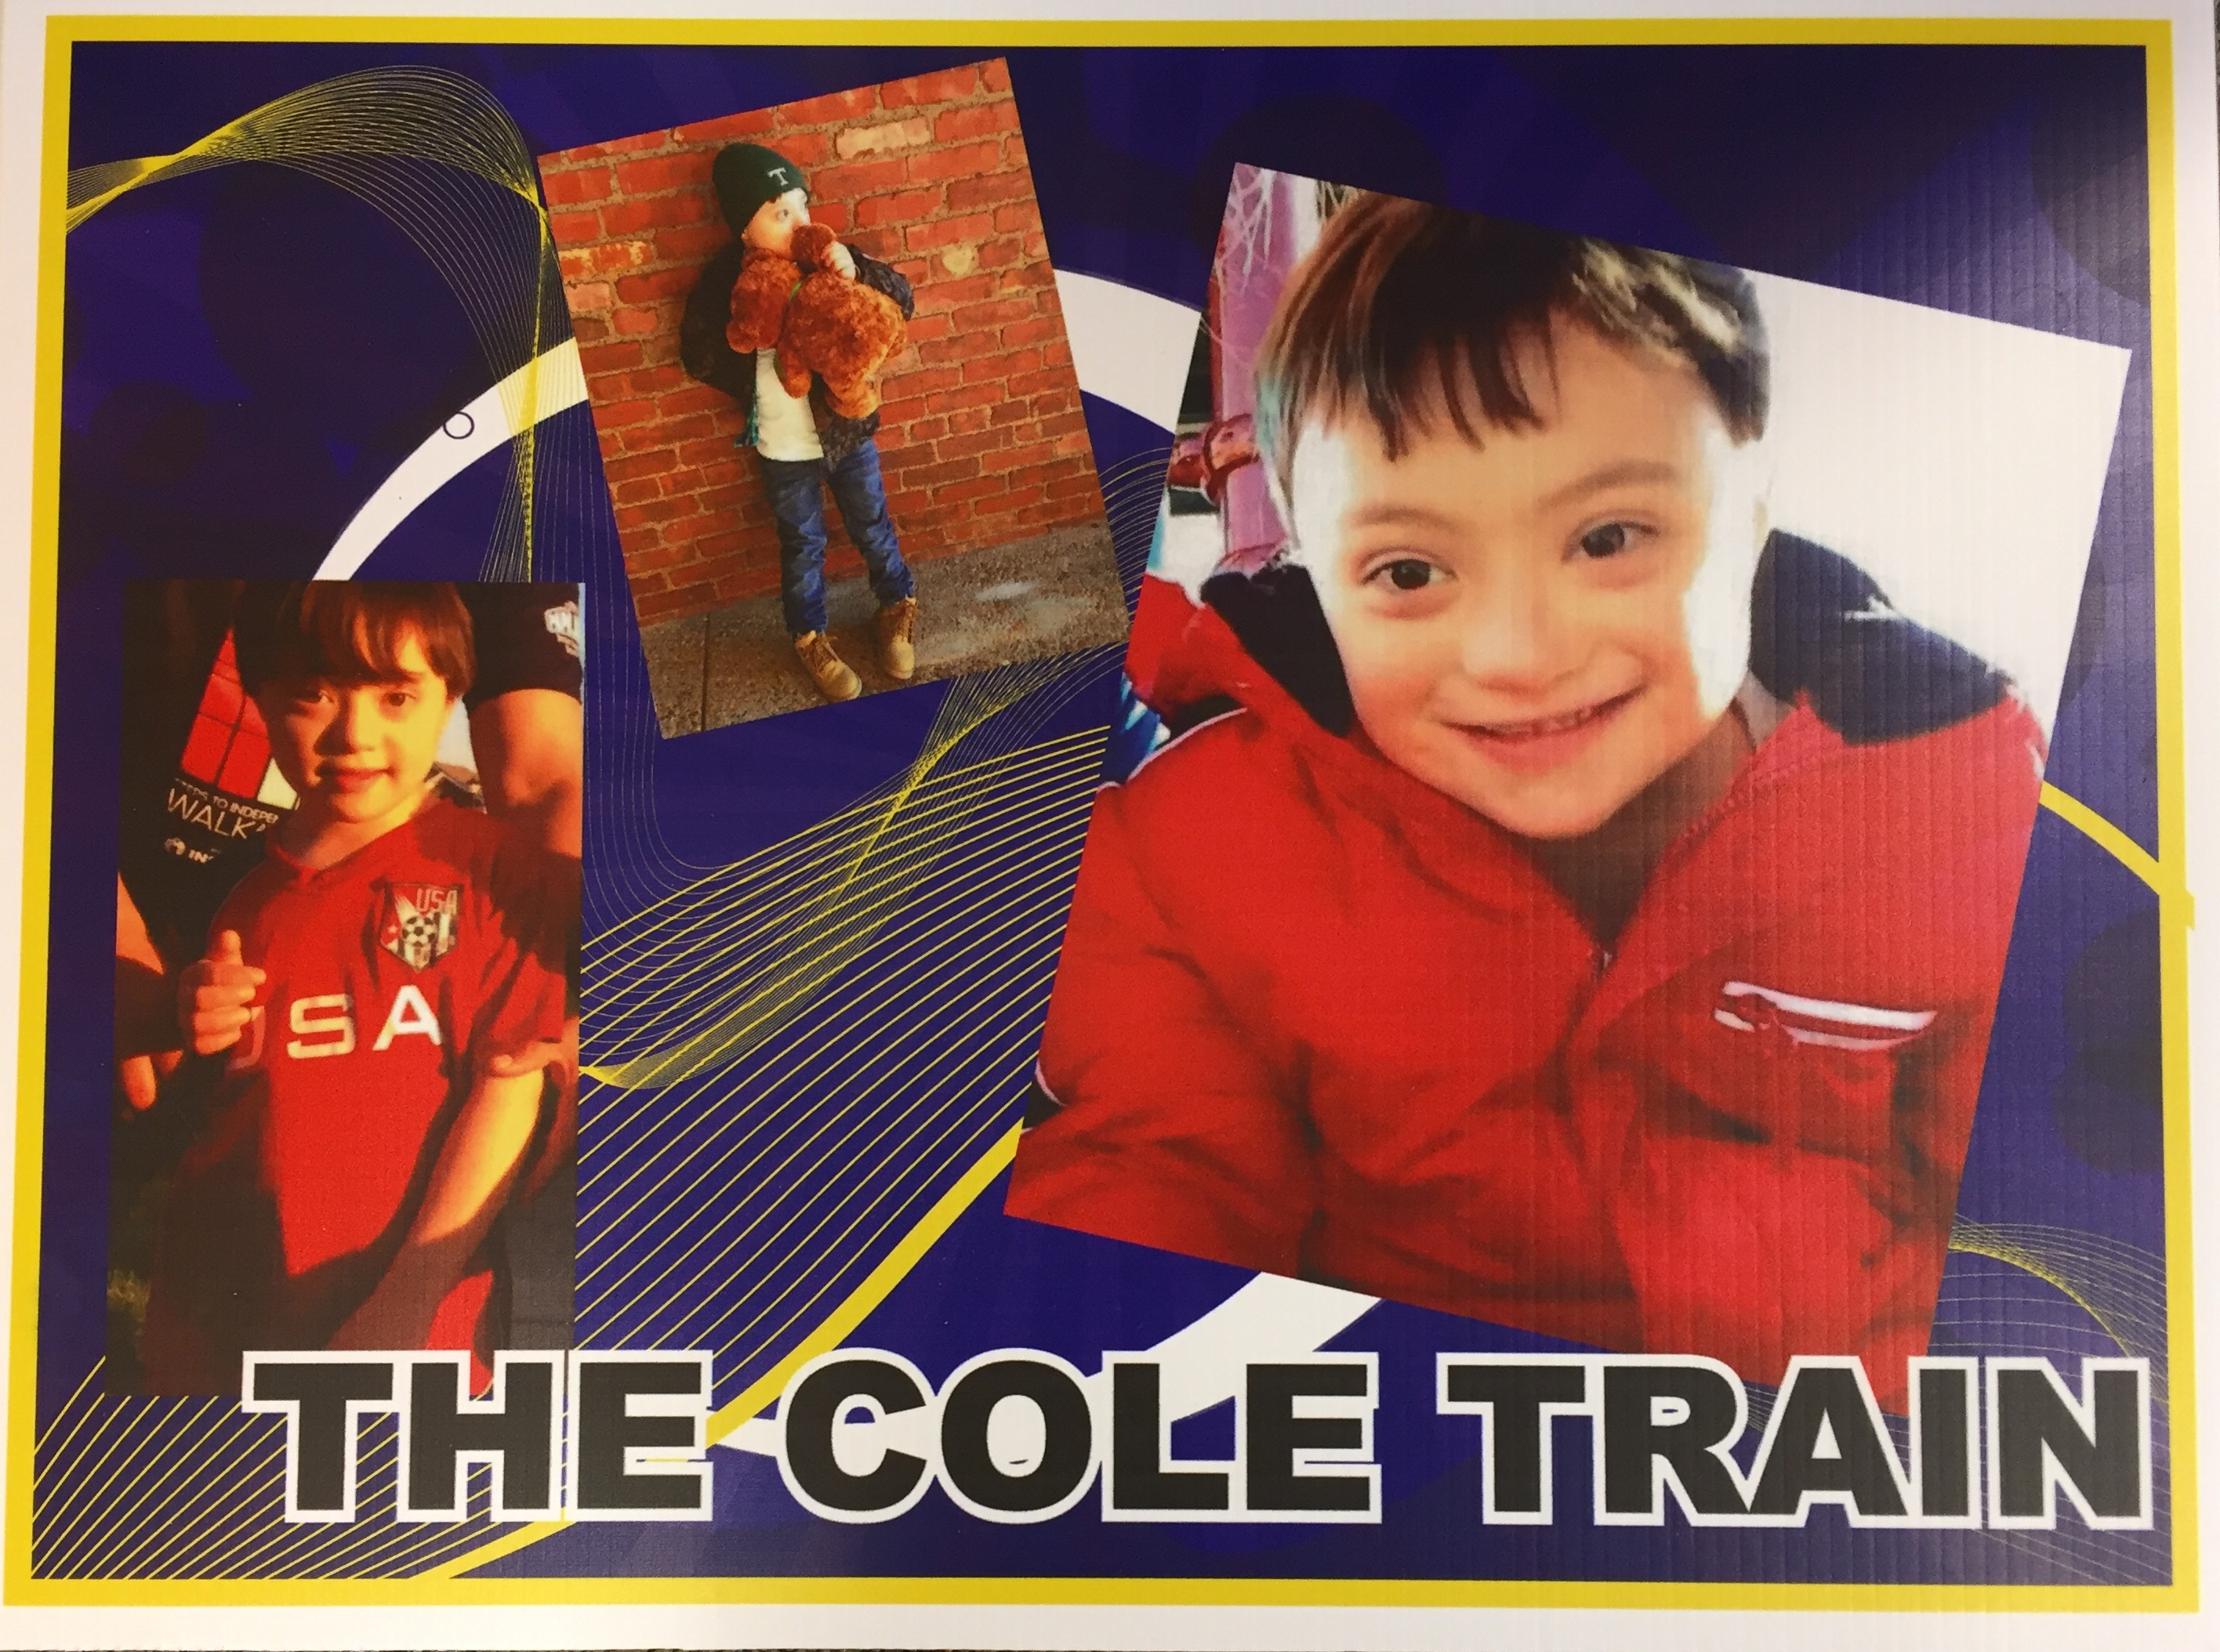 The Cole Train